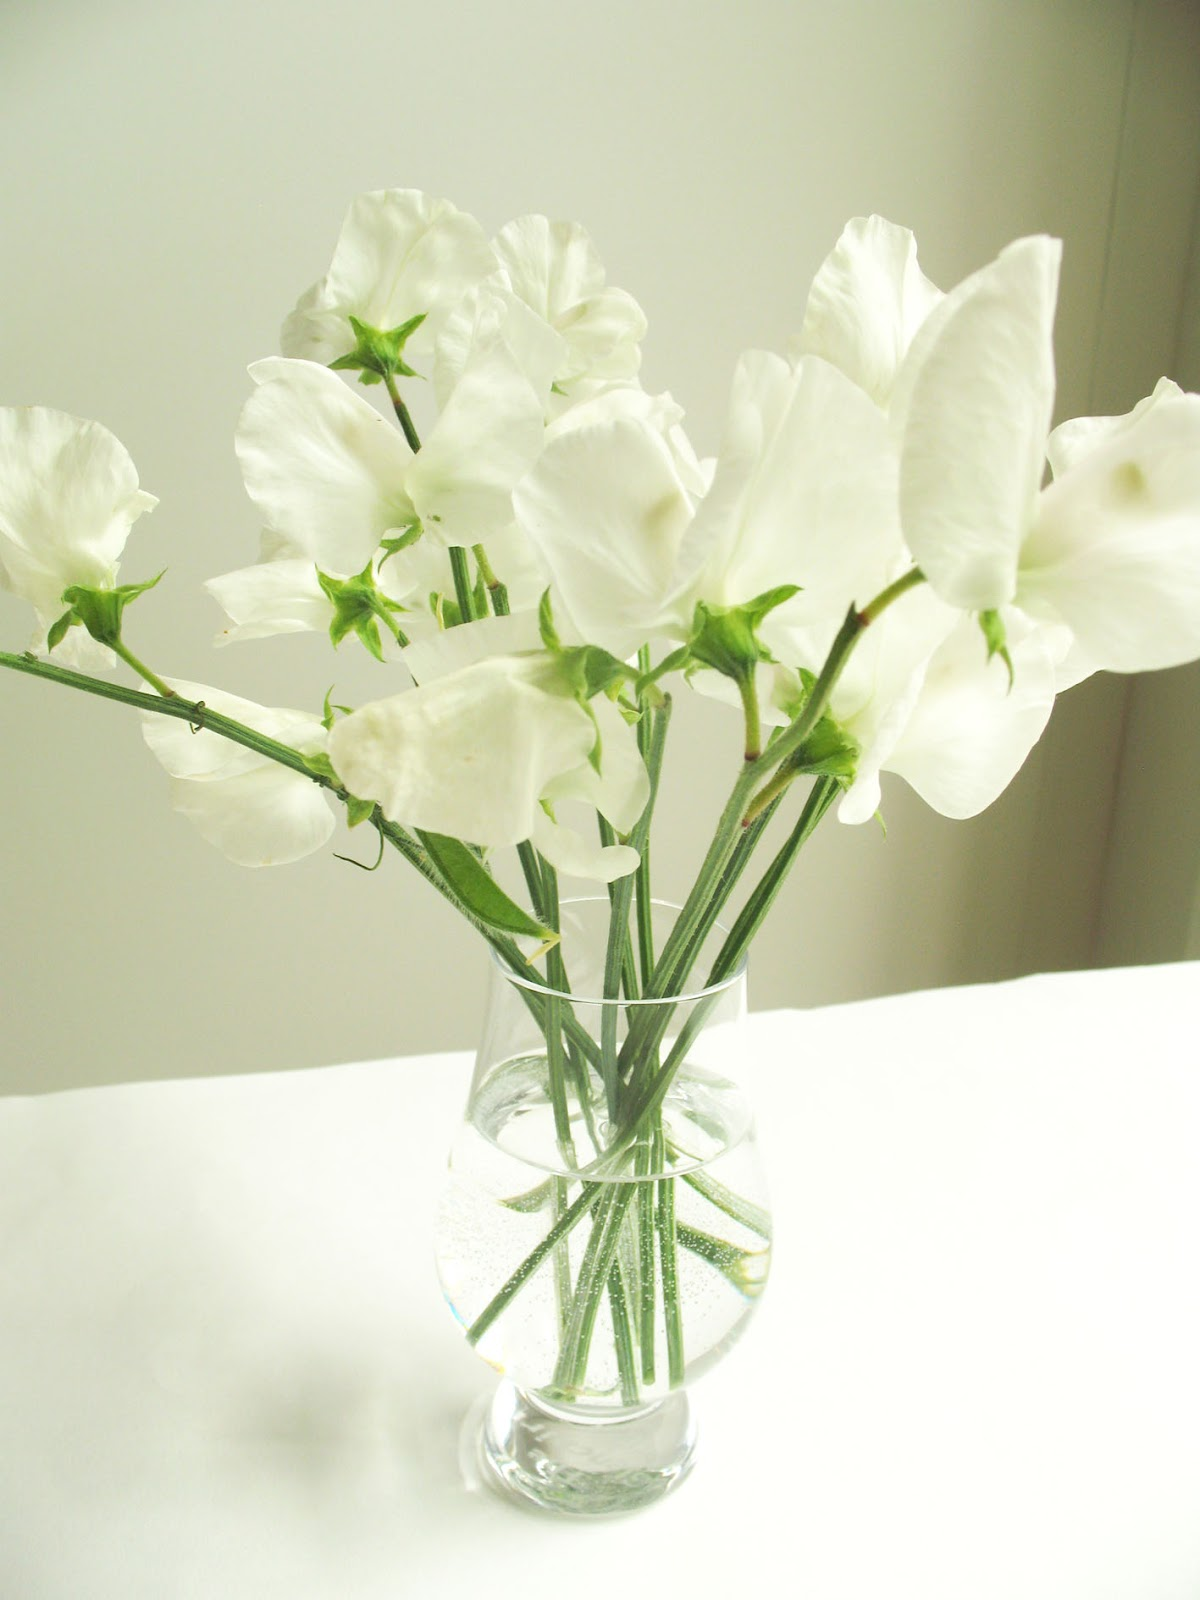 Inspiration for weddings invitations and stationery white sweet white sweet pea flowers mightylinksfo